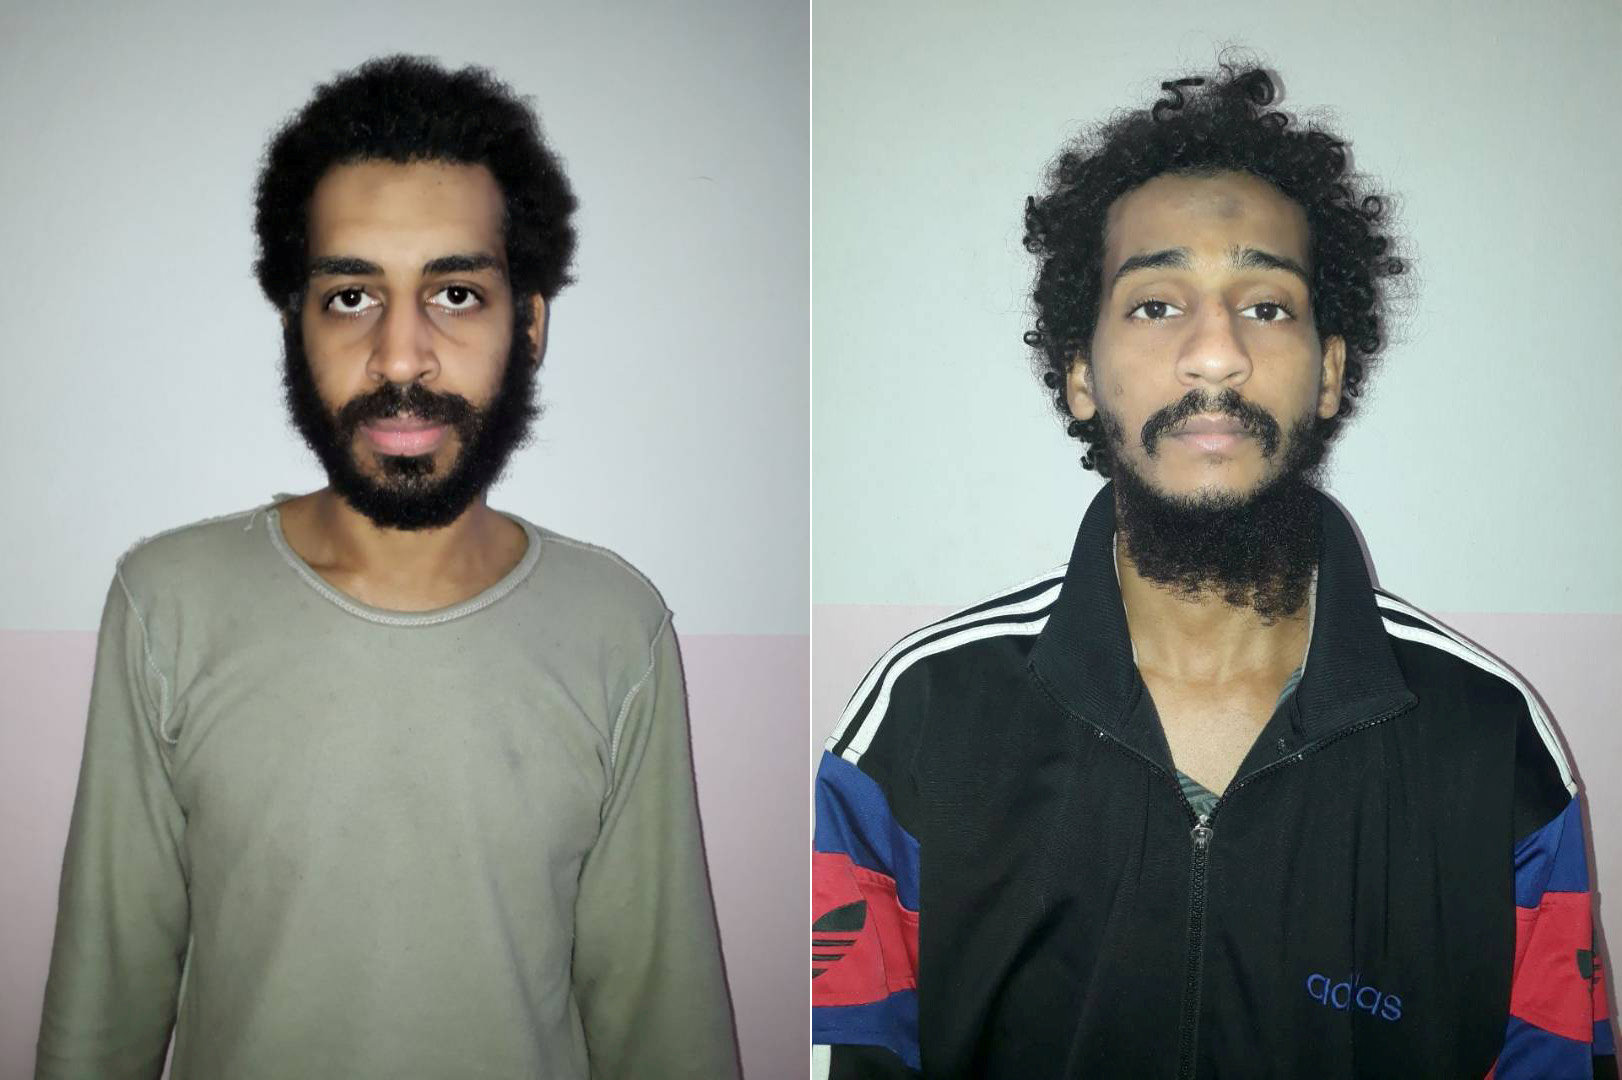 FILE PHOTO: A combination picture shows Alexanda Kotey and Shafee Elsheikh, who the Syrian Democratic Forces (SDF) claim are British nationals, in these undated handout pictures in Amouda, Syria released February 9, 2018. Syrian Democratic Forces/Handout via REUTERS